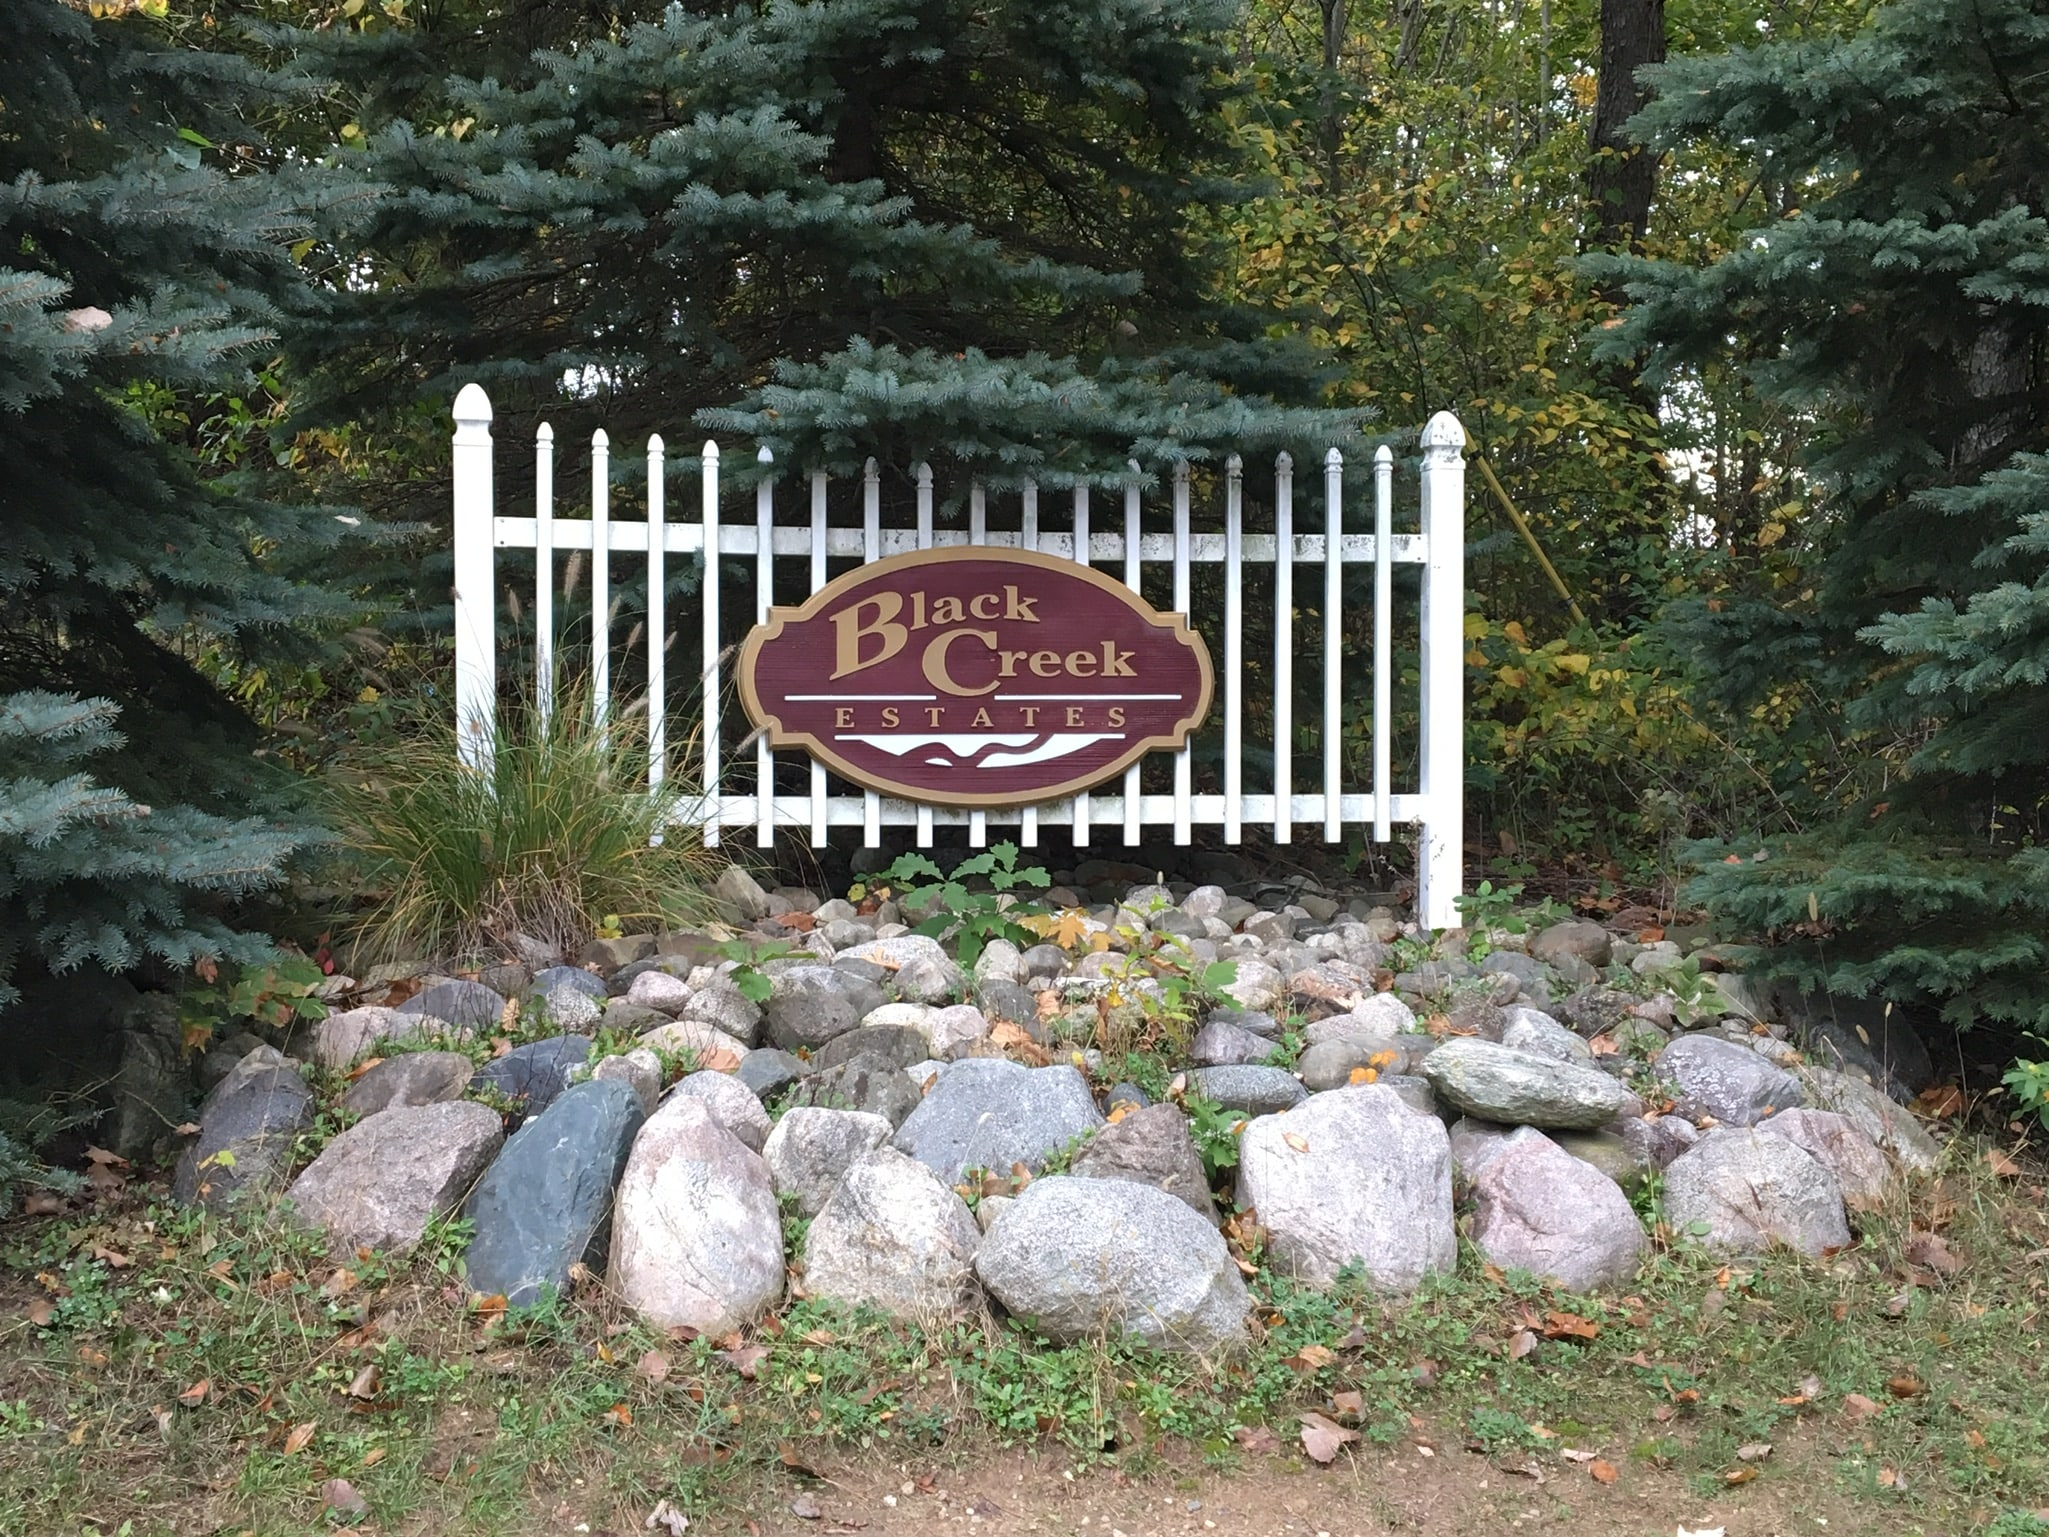 Entrance Sign of Black Creek Estates